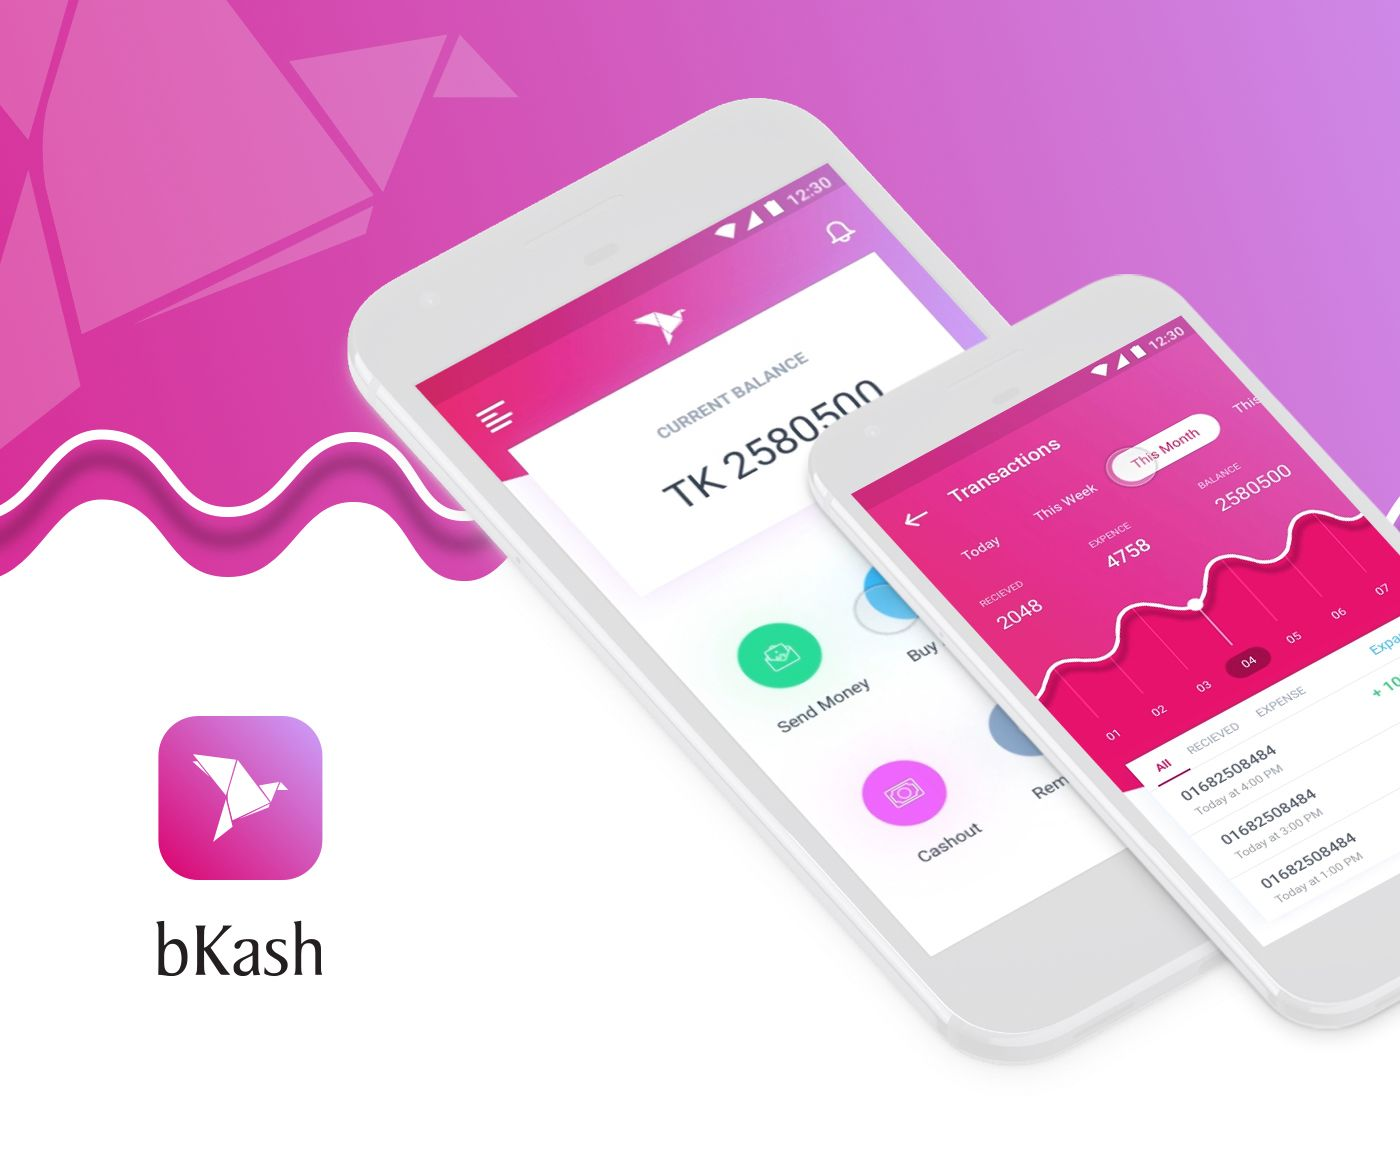 Check out my behance project mobile banking app https